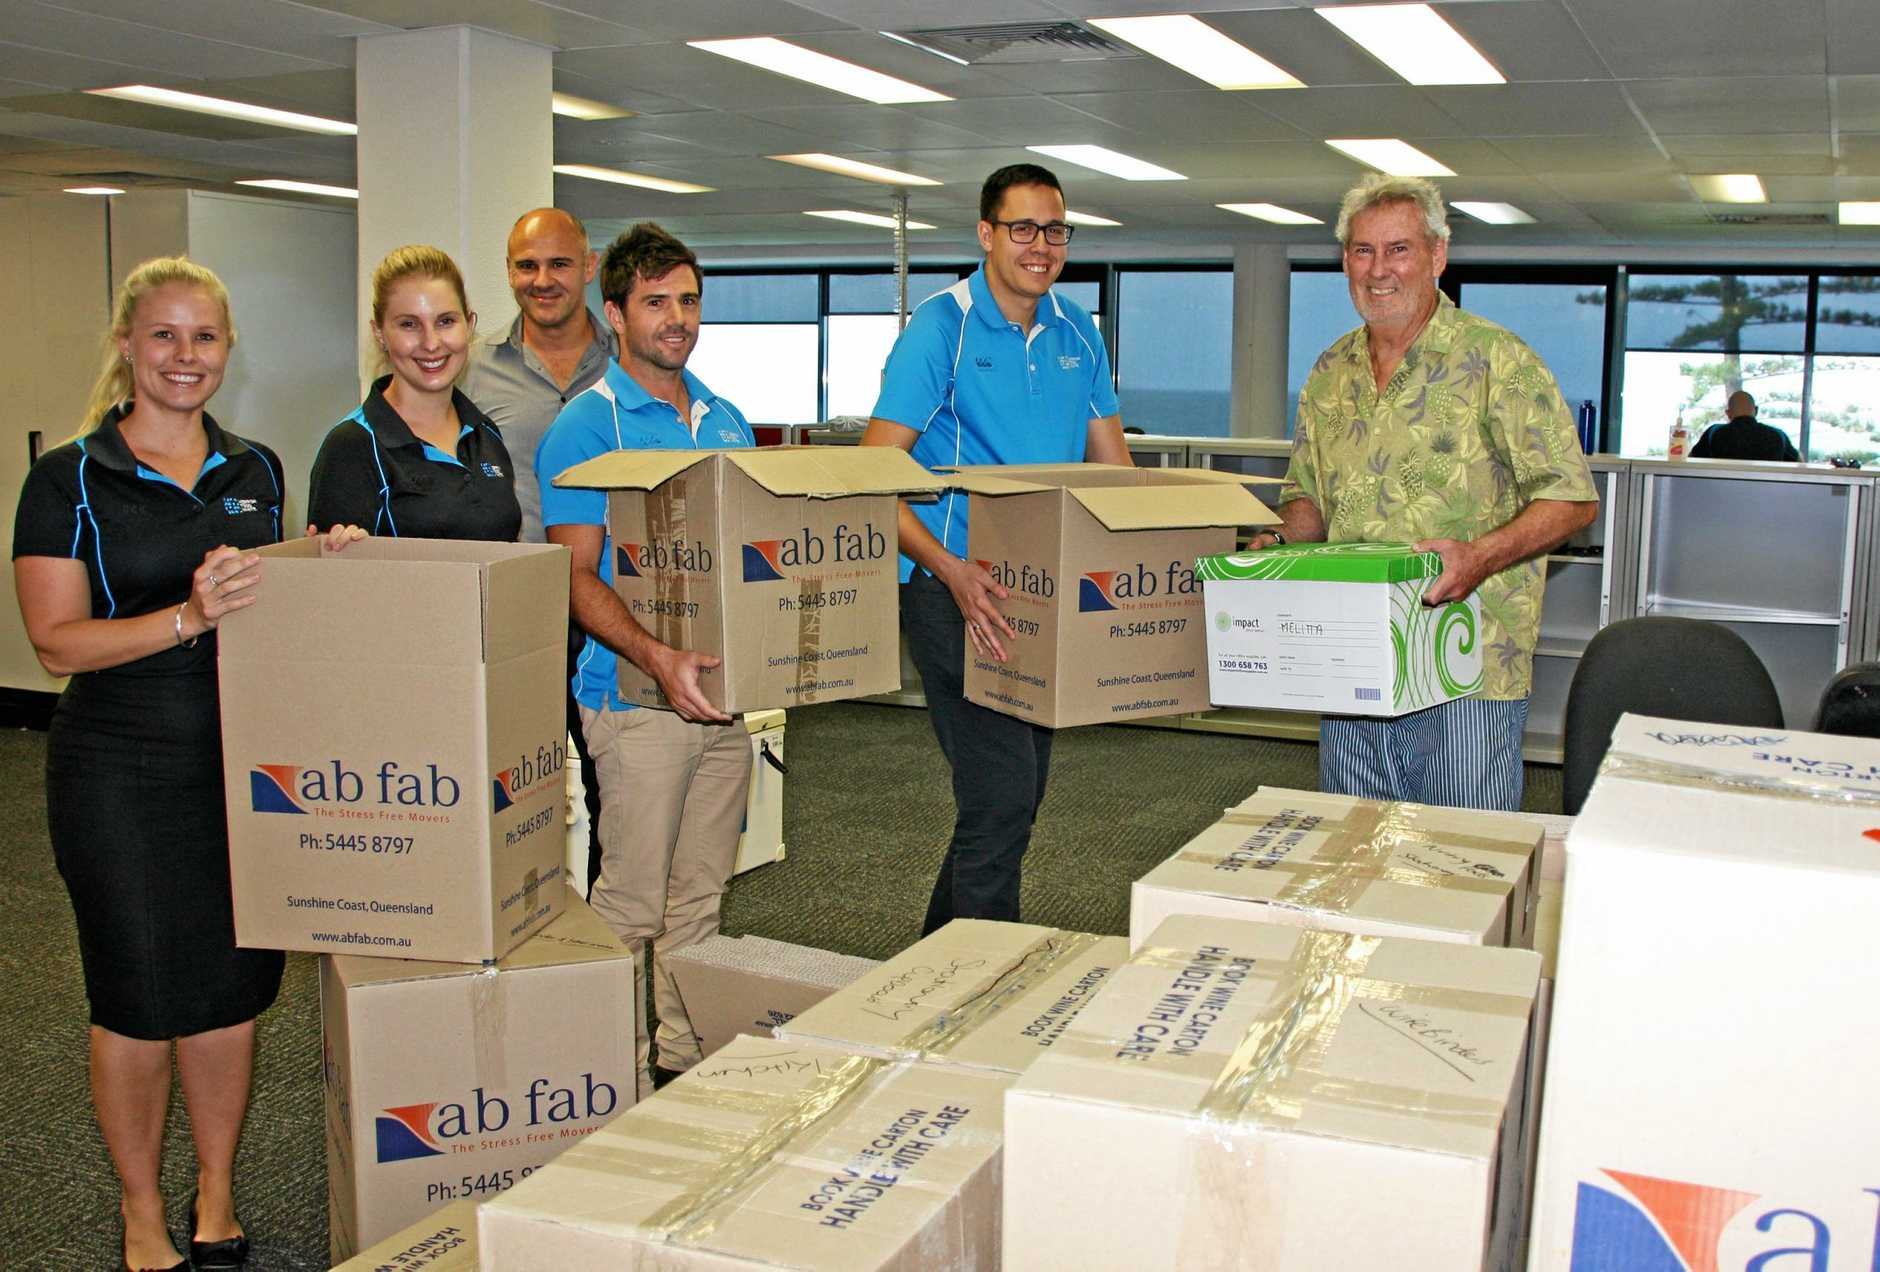 MOVING DAY: HTW Sunshine Coast's Melitta McDonald, Stacey Sager, Stuart Greensill, Scott Radmall, Duane Gilliland and Peter Degotardi pack up in readiness for the move to Maroochydore.